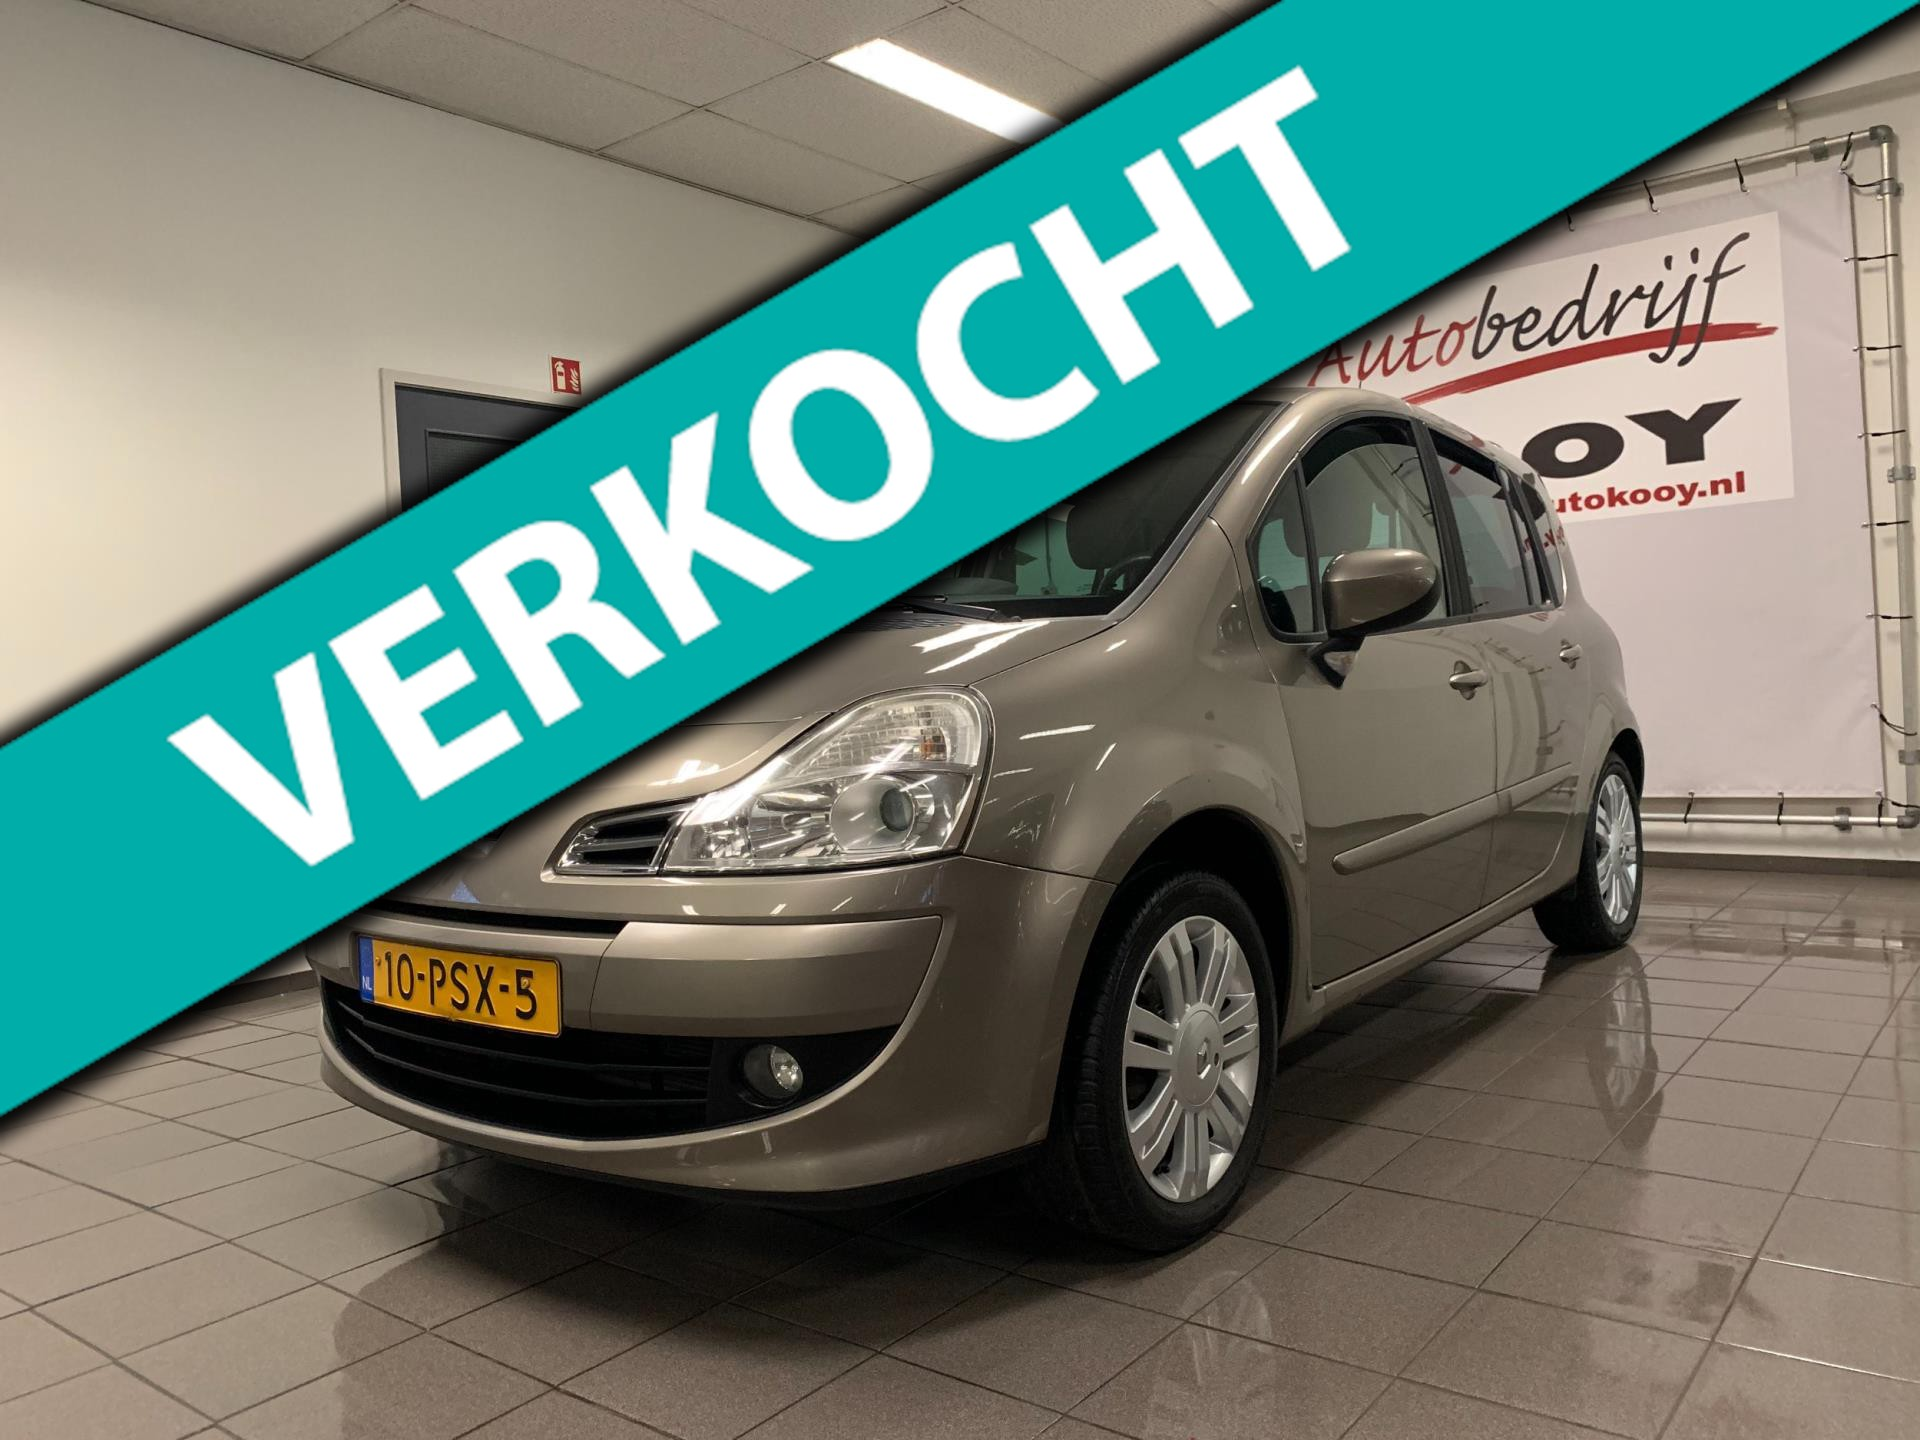 Renault Grand Modus 1.2 TCE Exception * Airco-ecc / Cruise control / Trekhaak *